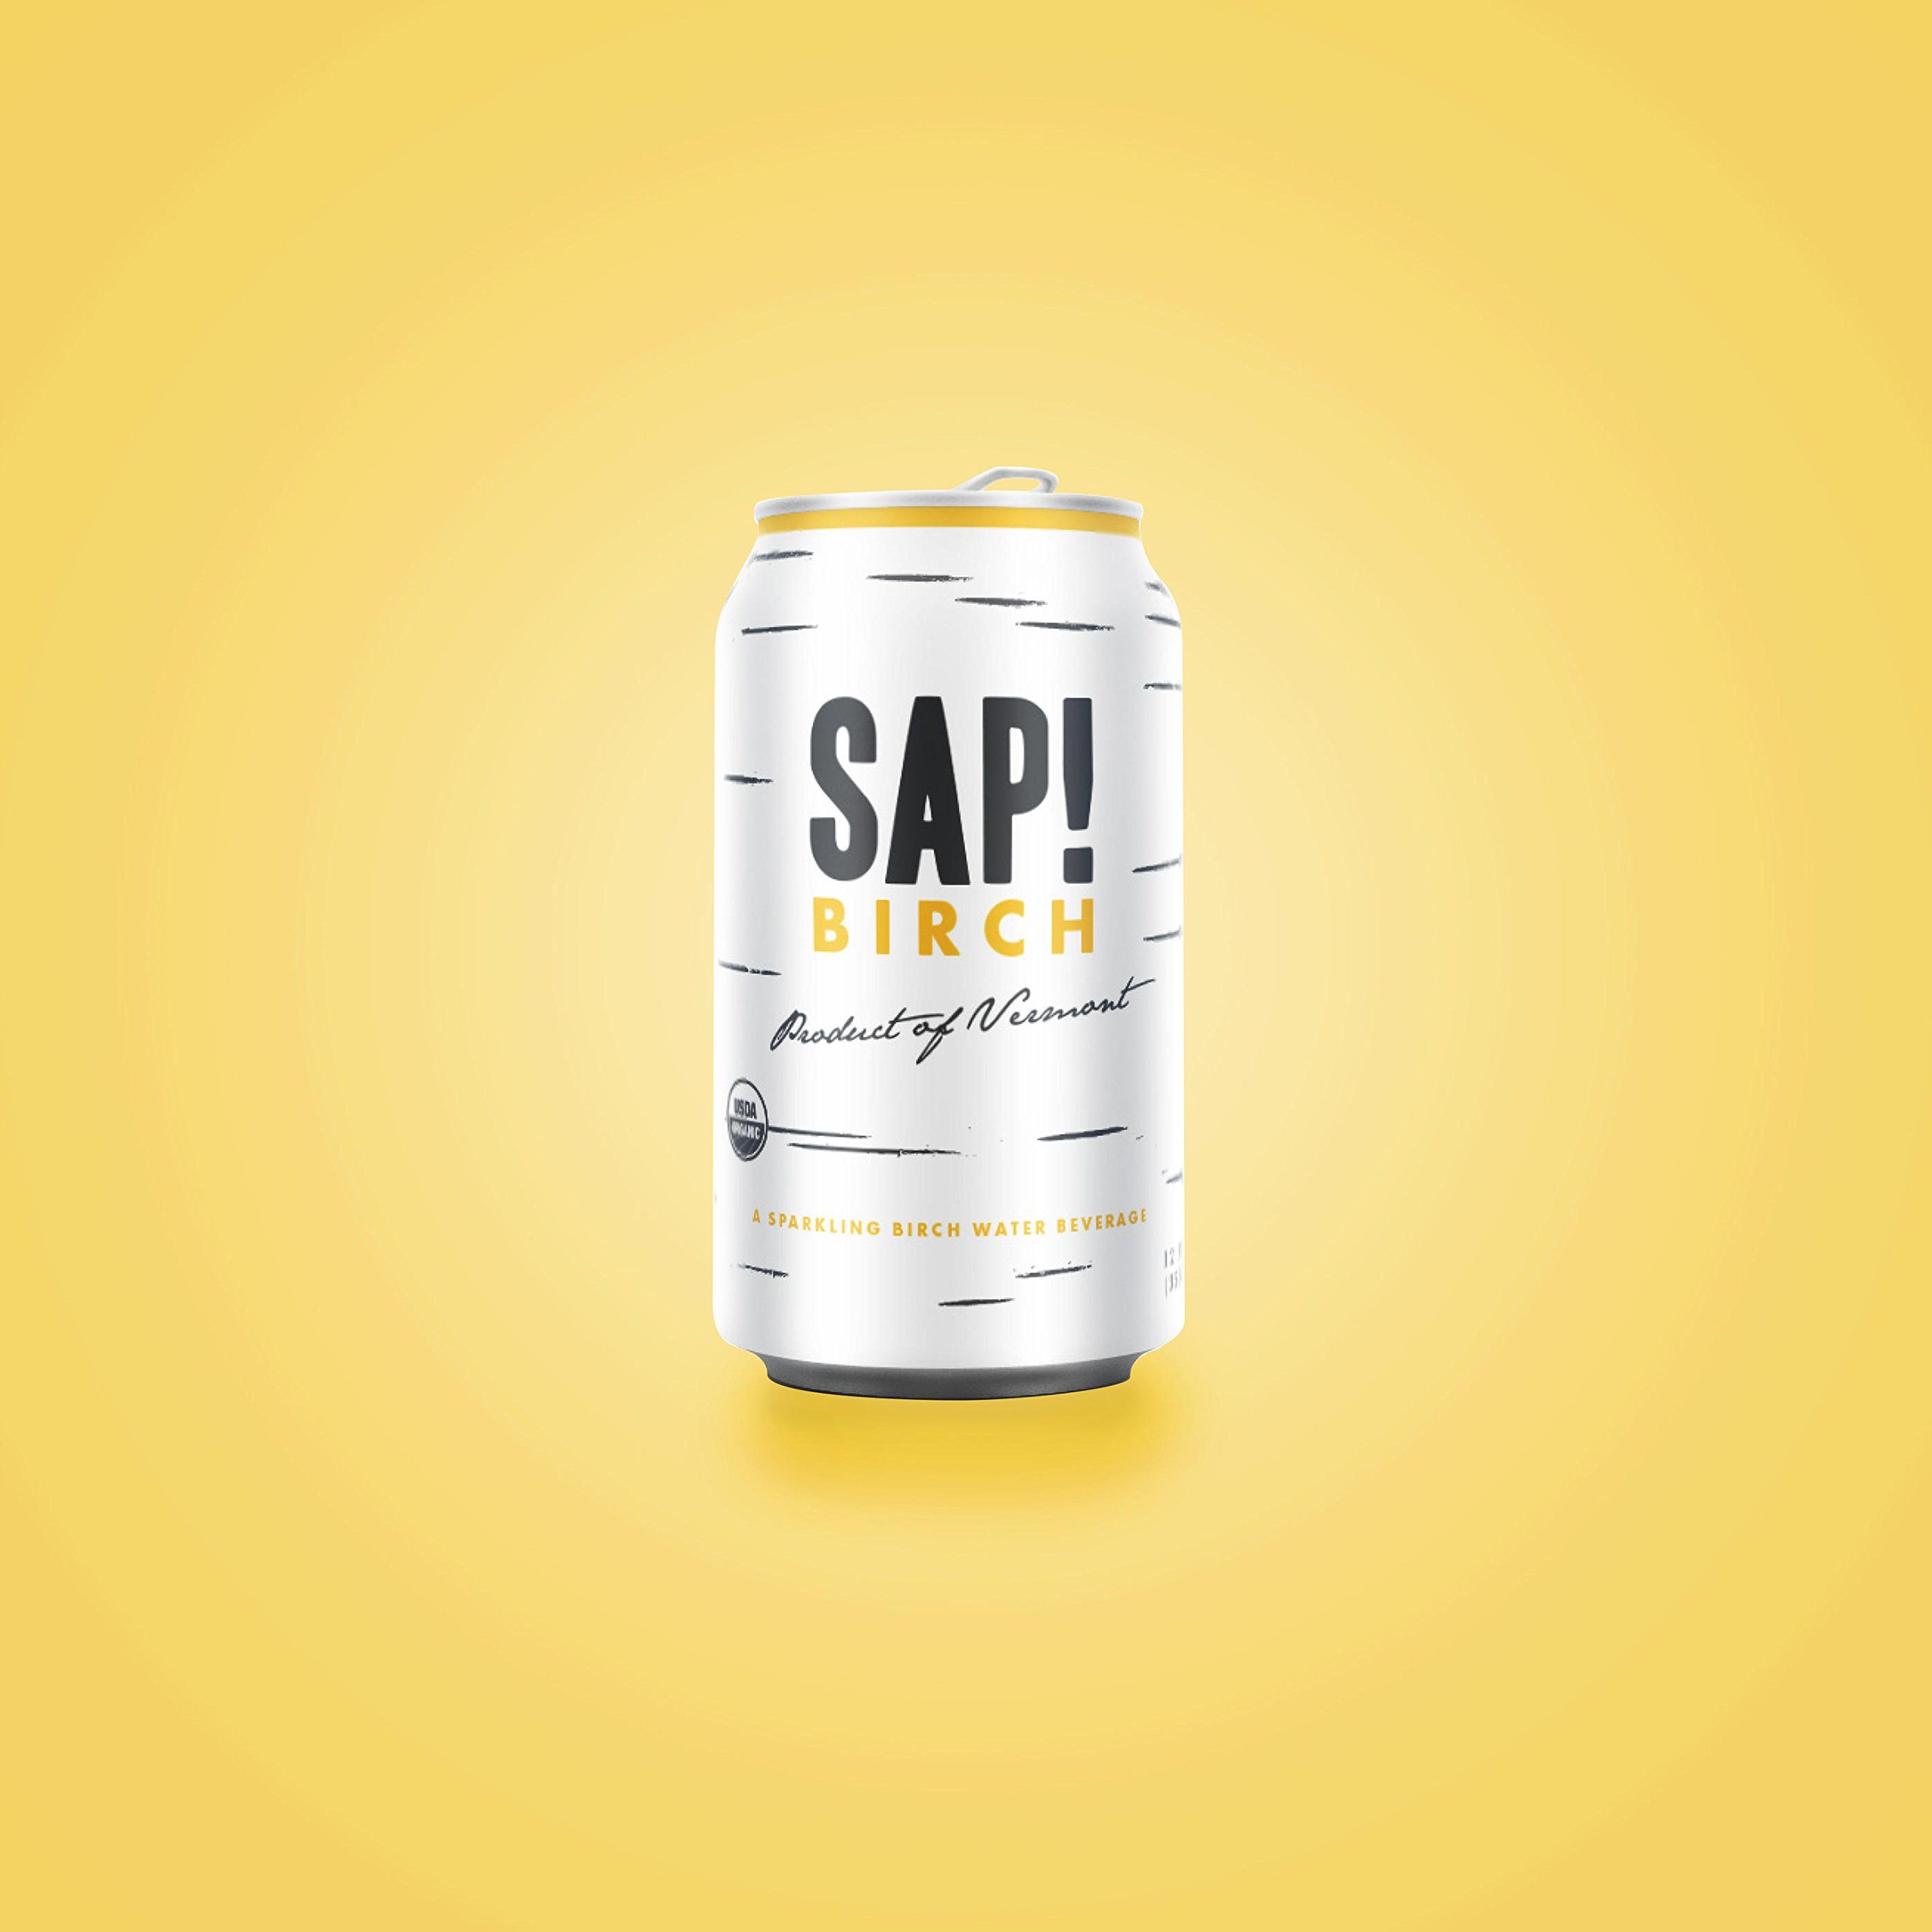 Sap! Birch Sparkling Soda Water – Case of 24 – USDA Organic Gluten Free Non-GMO – Delicious alternative with only 25 calories – low glycemic and contains electrolytes and natural nutrients